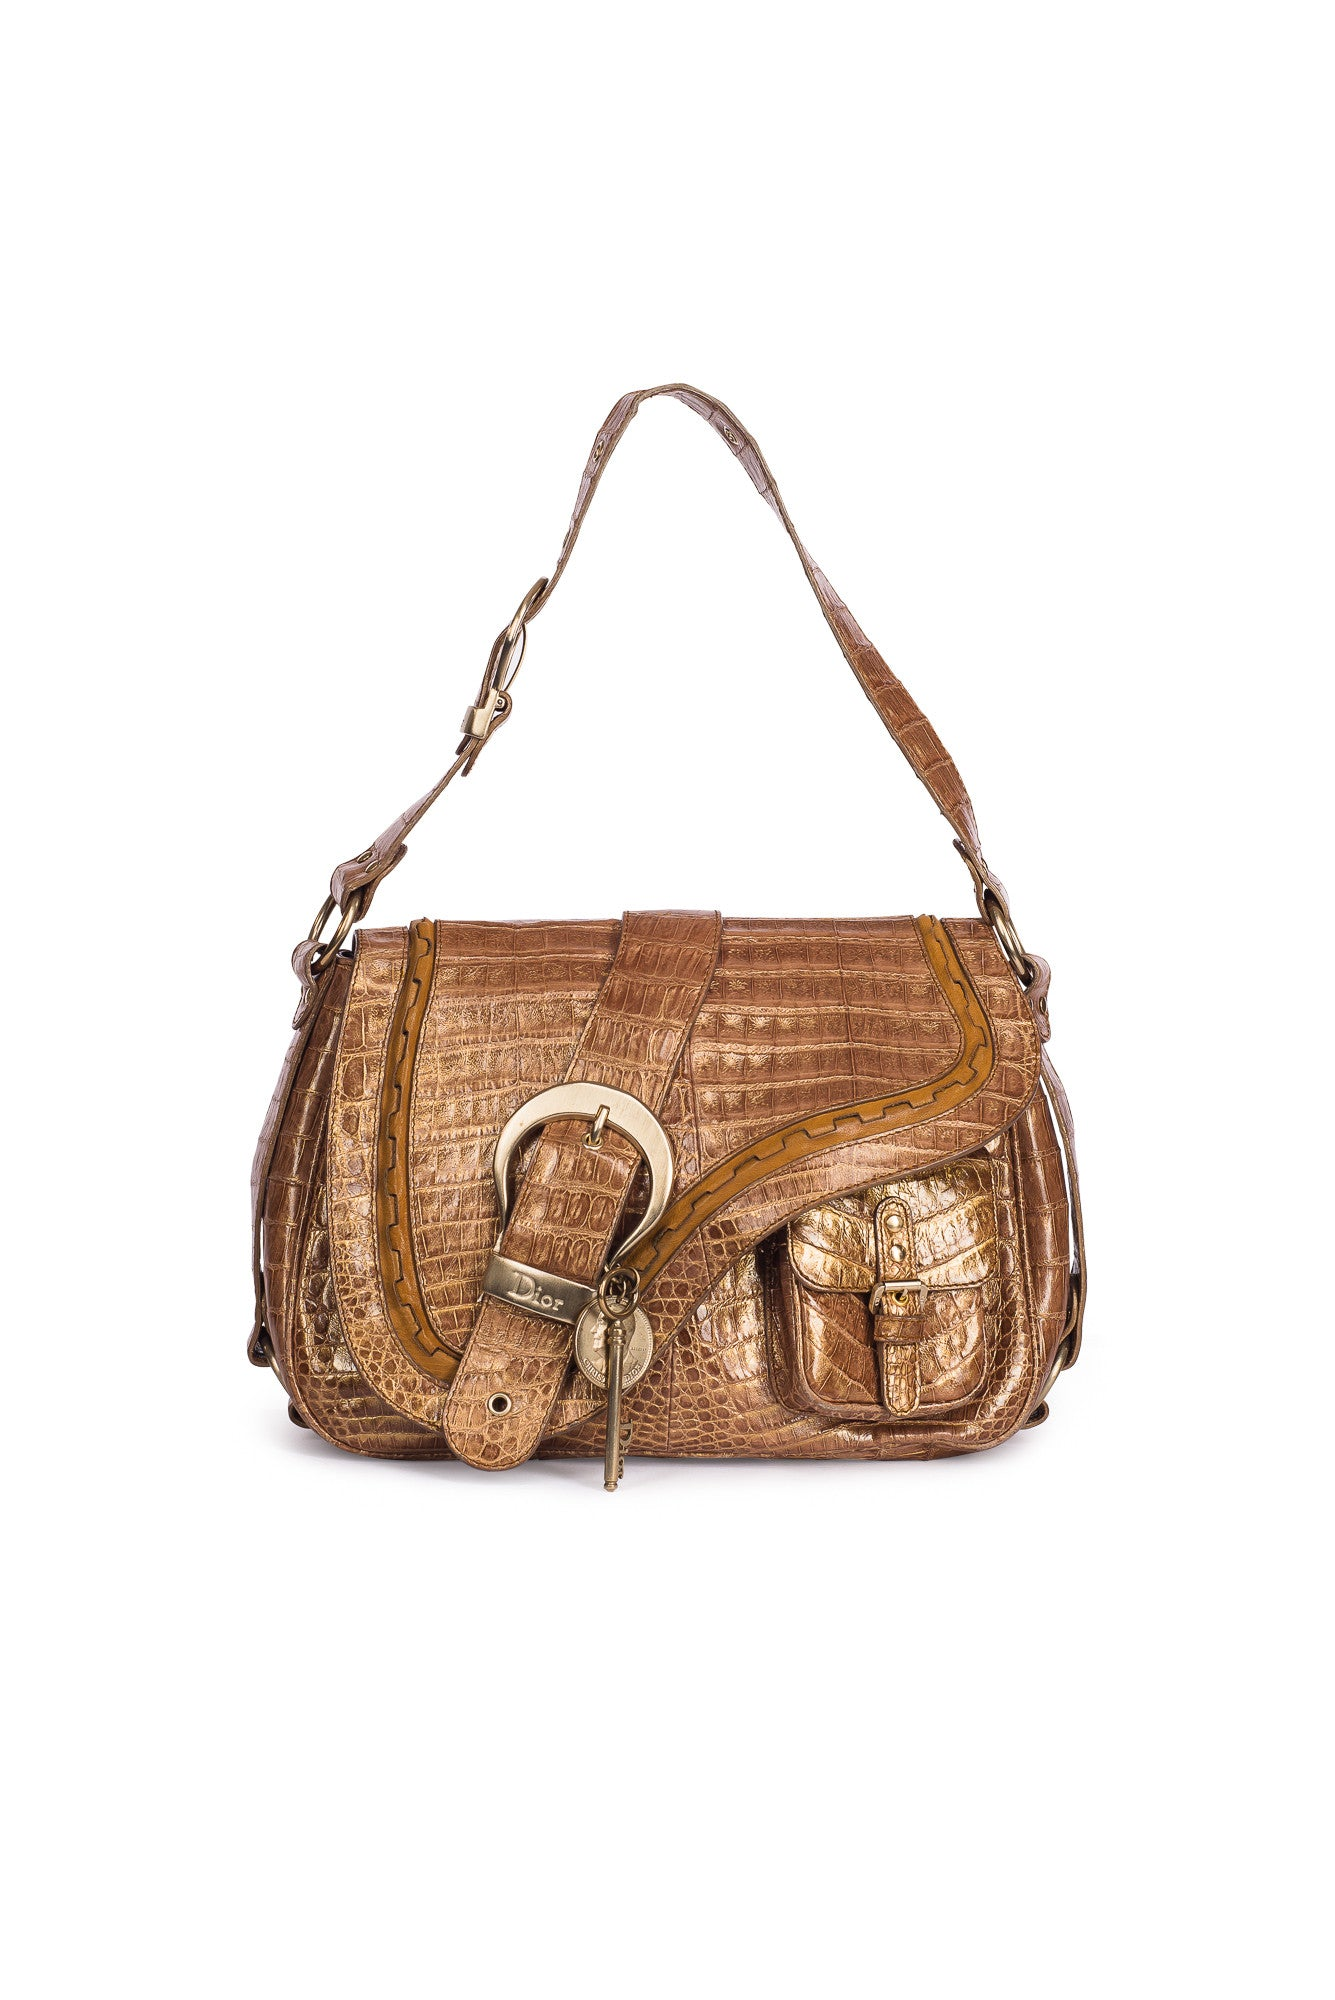 CHRISTIAN DIOR  Crocodile Vintage Bag